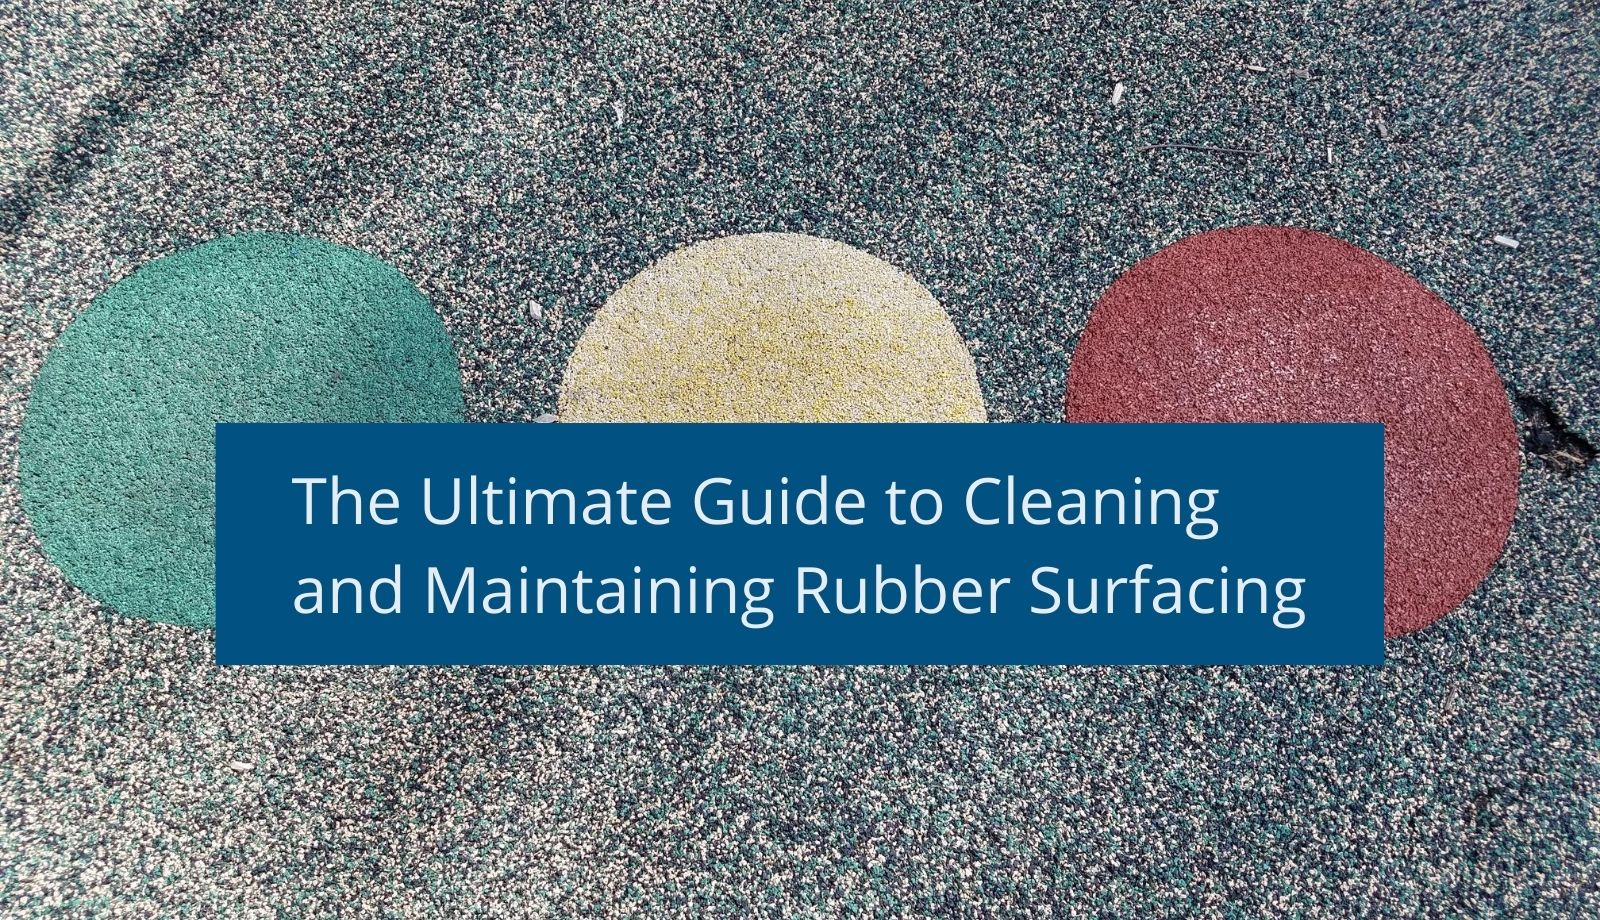 The Ultimate Guide to Cleaning and Maintaining Rubber Surfacing